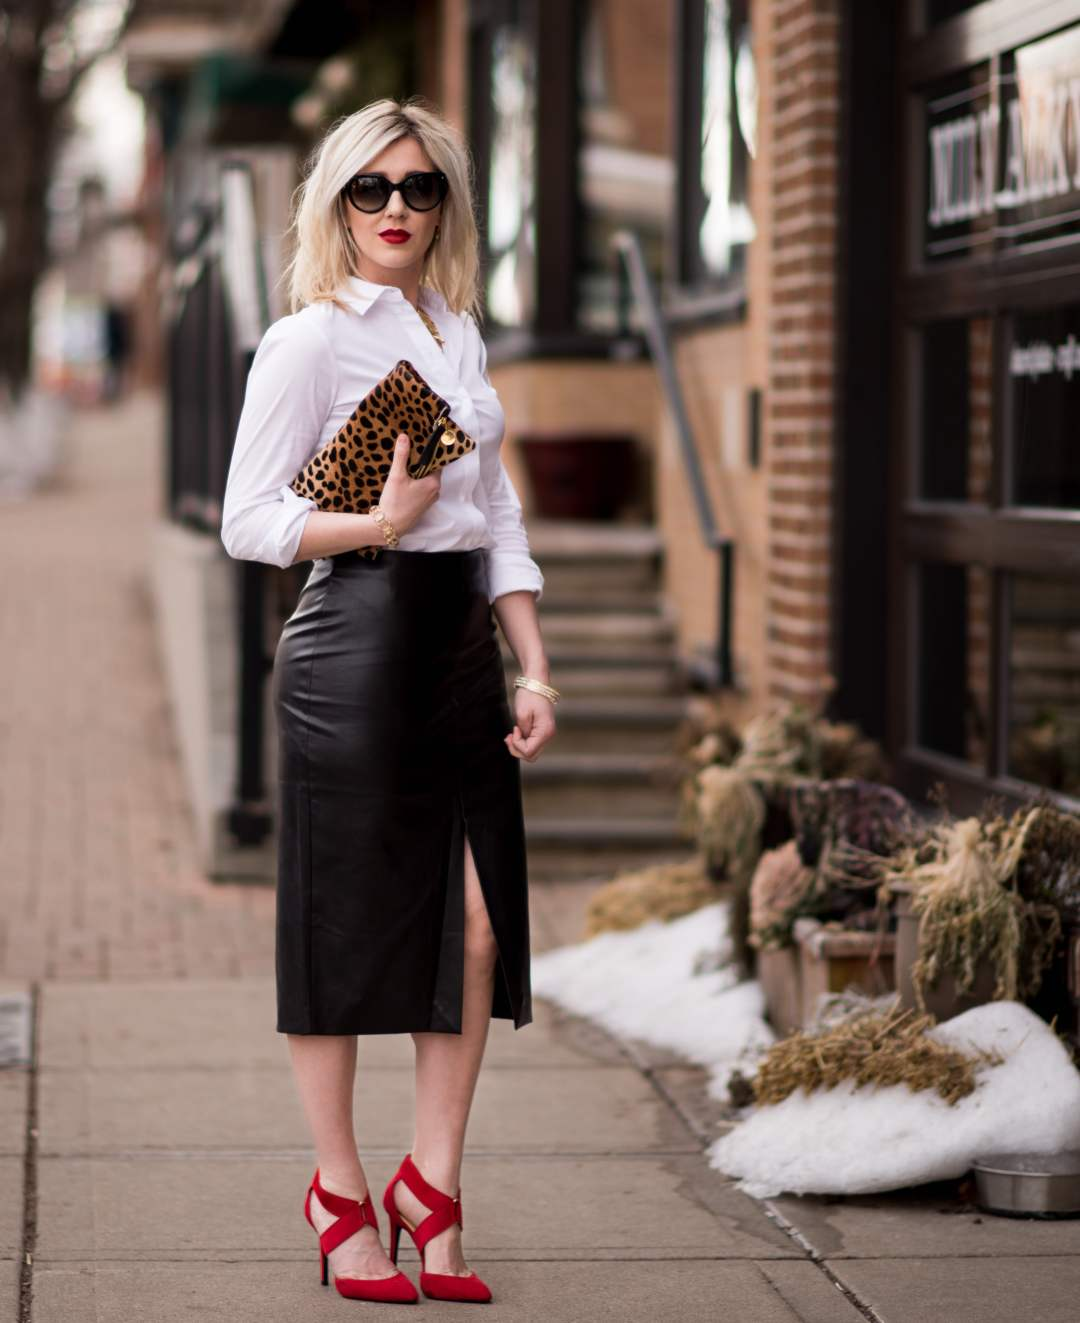 leather skirt & a red lip